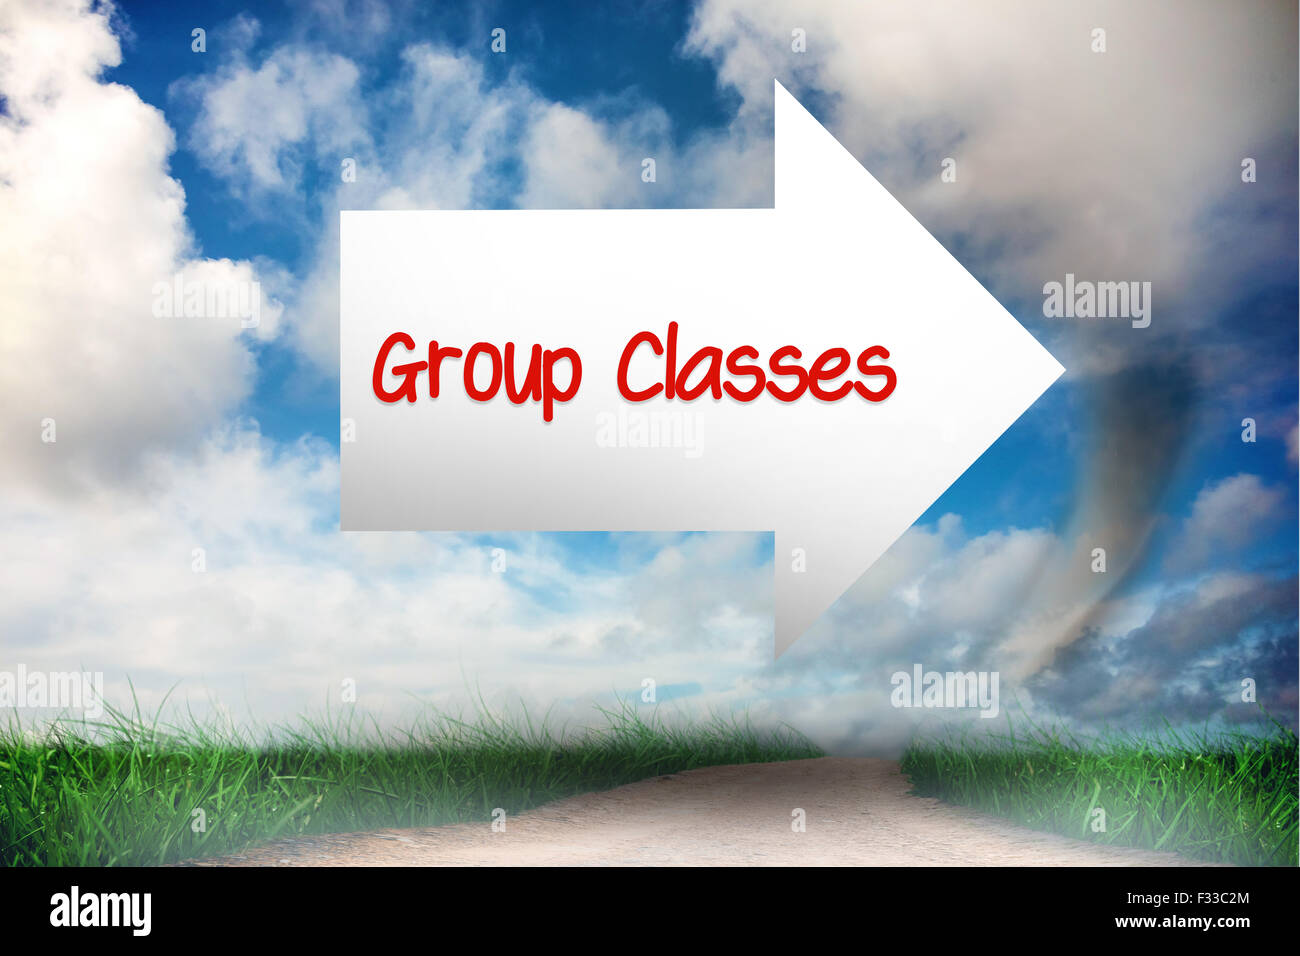 Group classes against road leading out to the horizon - Stock Image